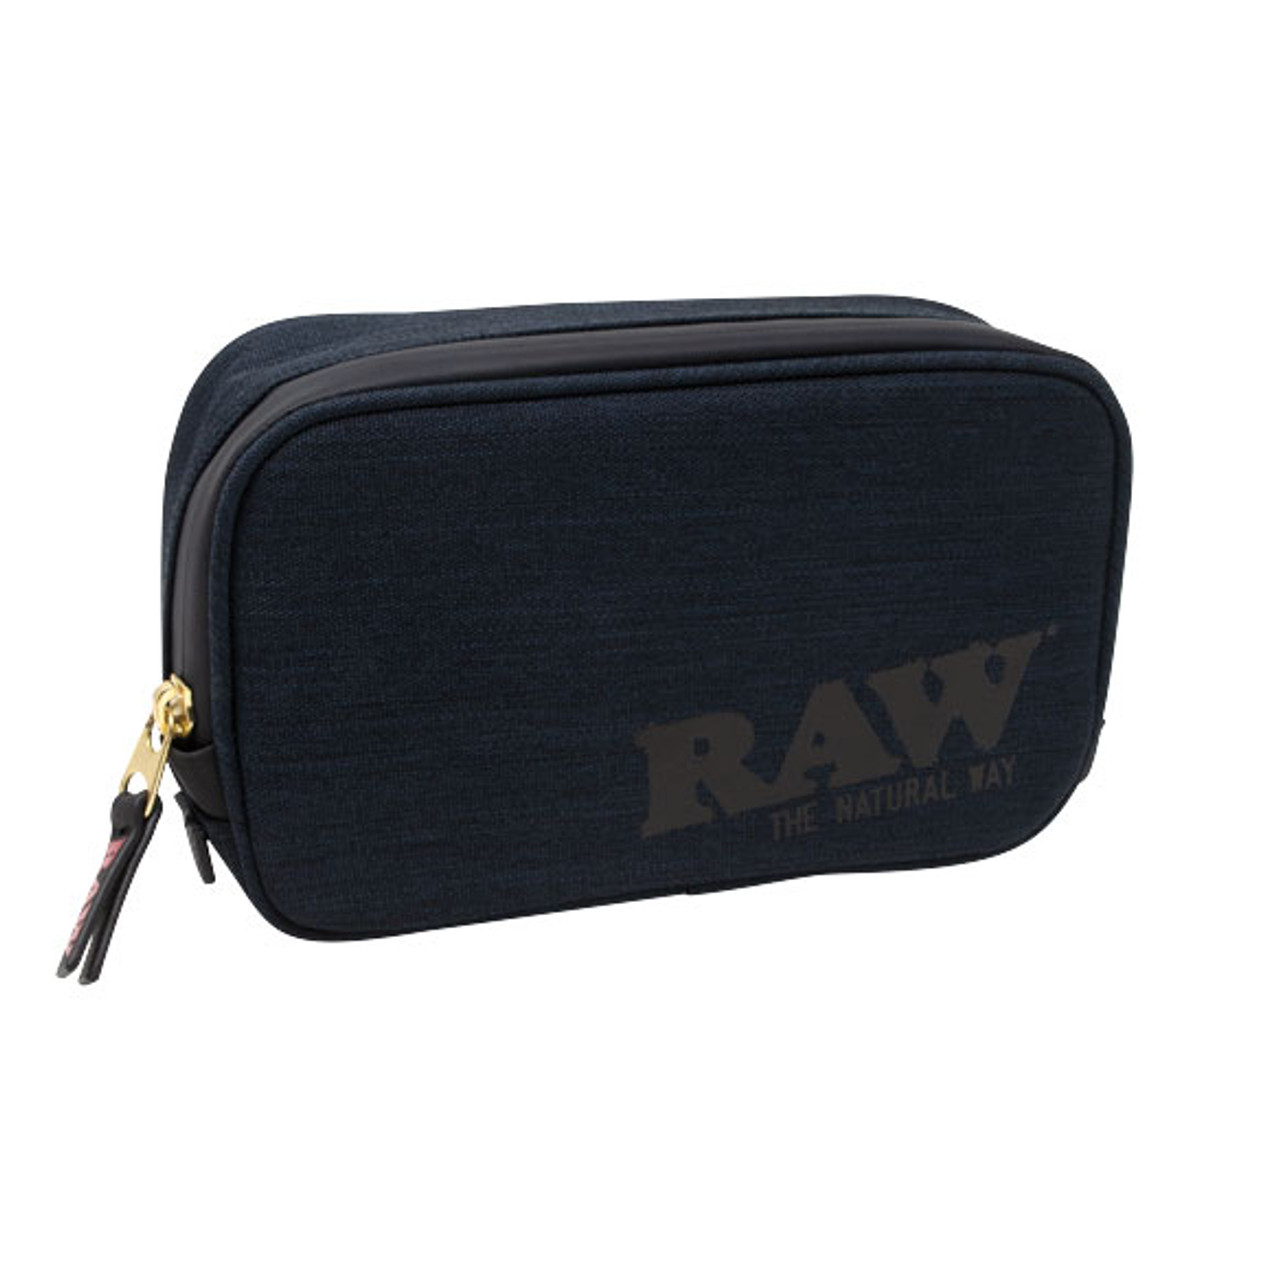 RAW Black Smell Proof Smokers Pouch v2